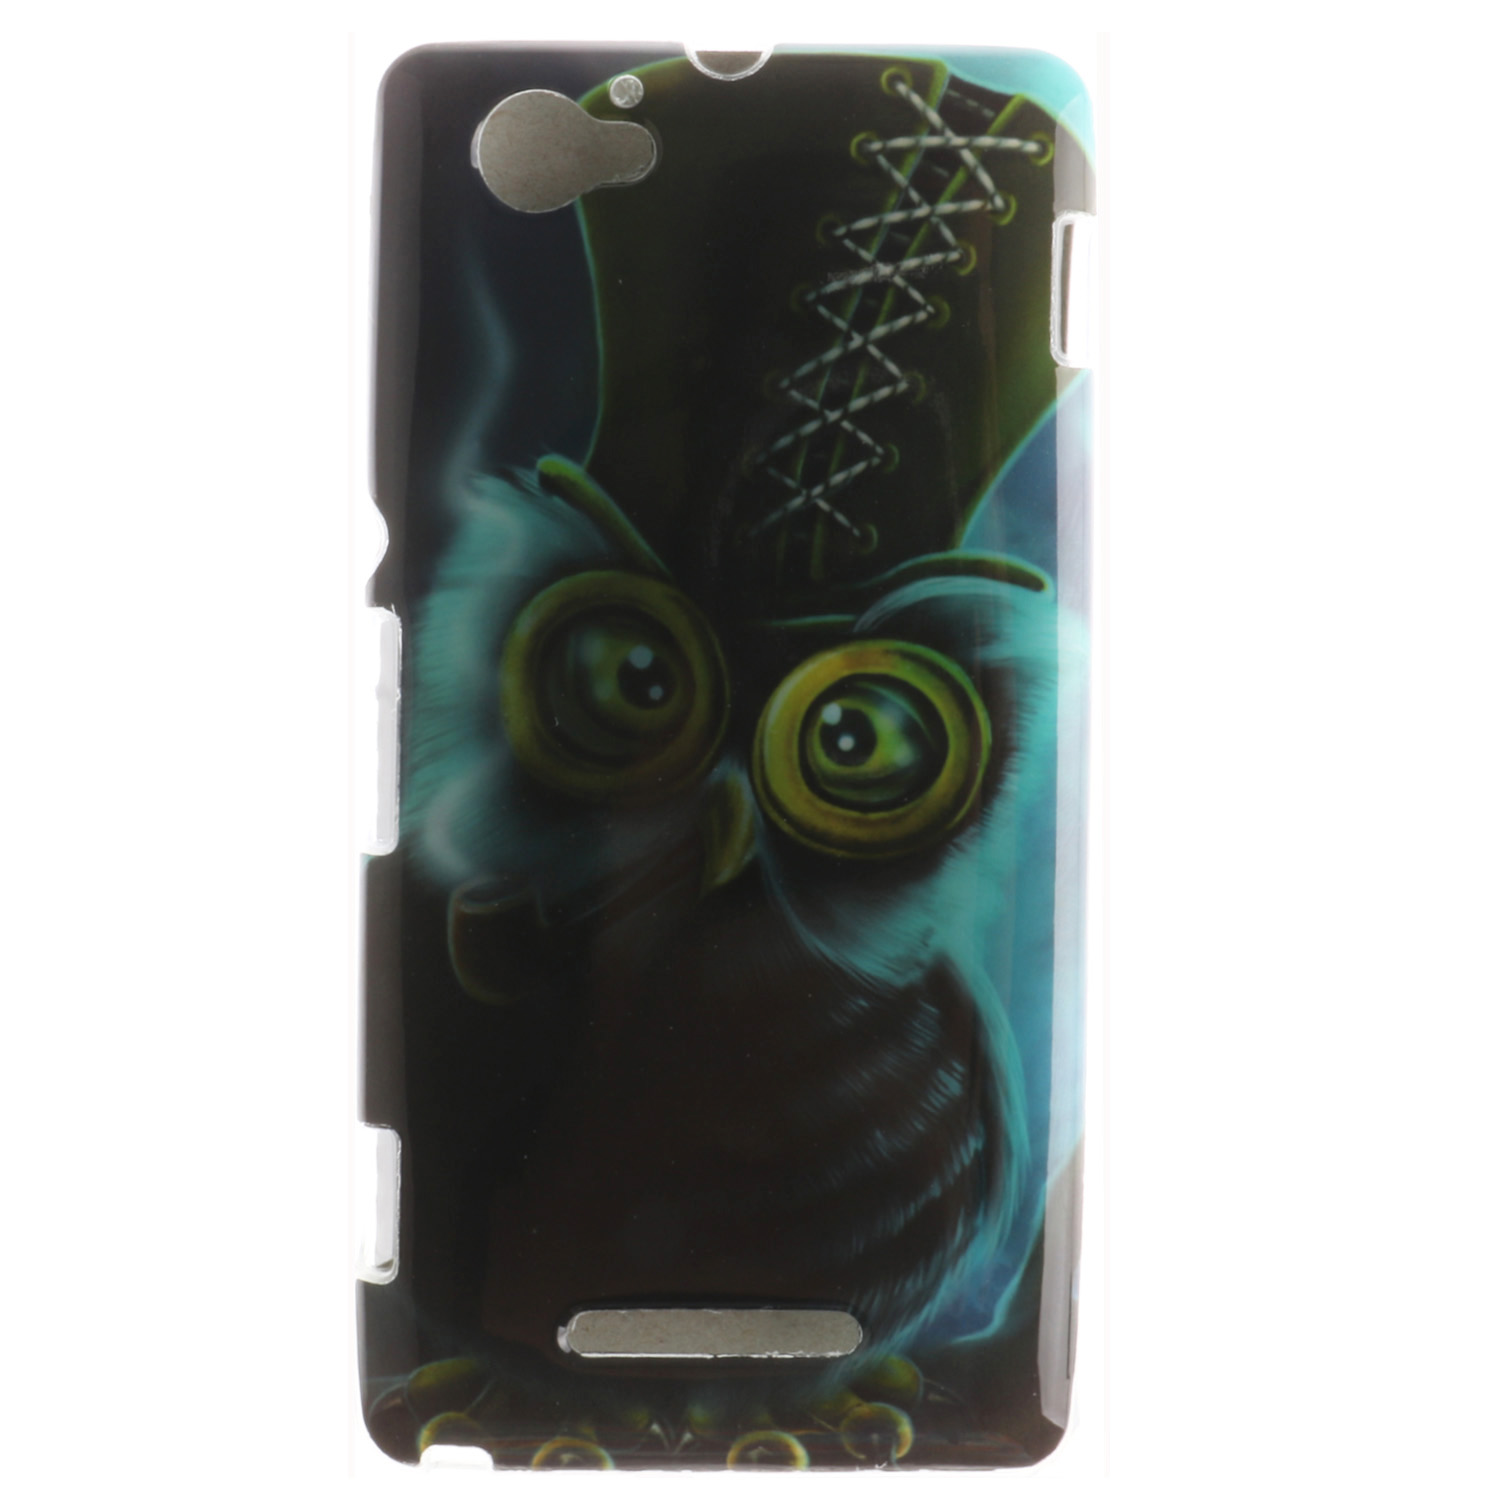 8f645778eed Wolfsay For Phone Case Sony Xperia M C1905 C1904 C2004 C2005 IMD ...